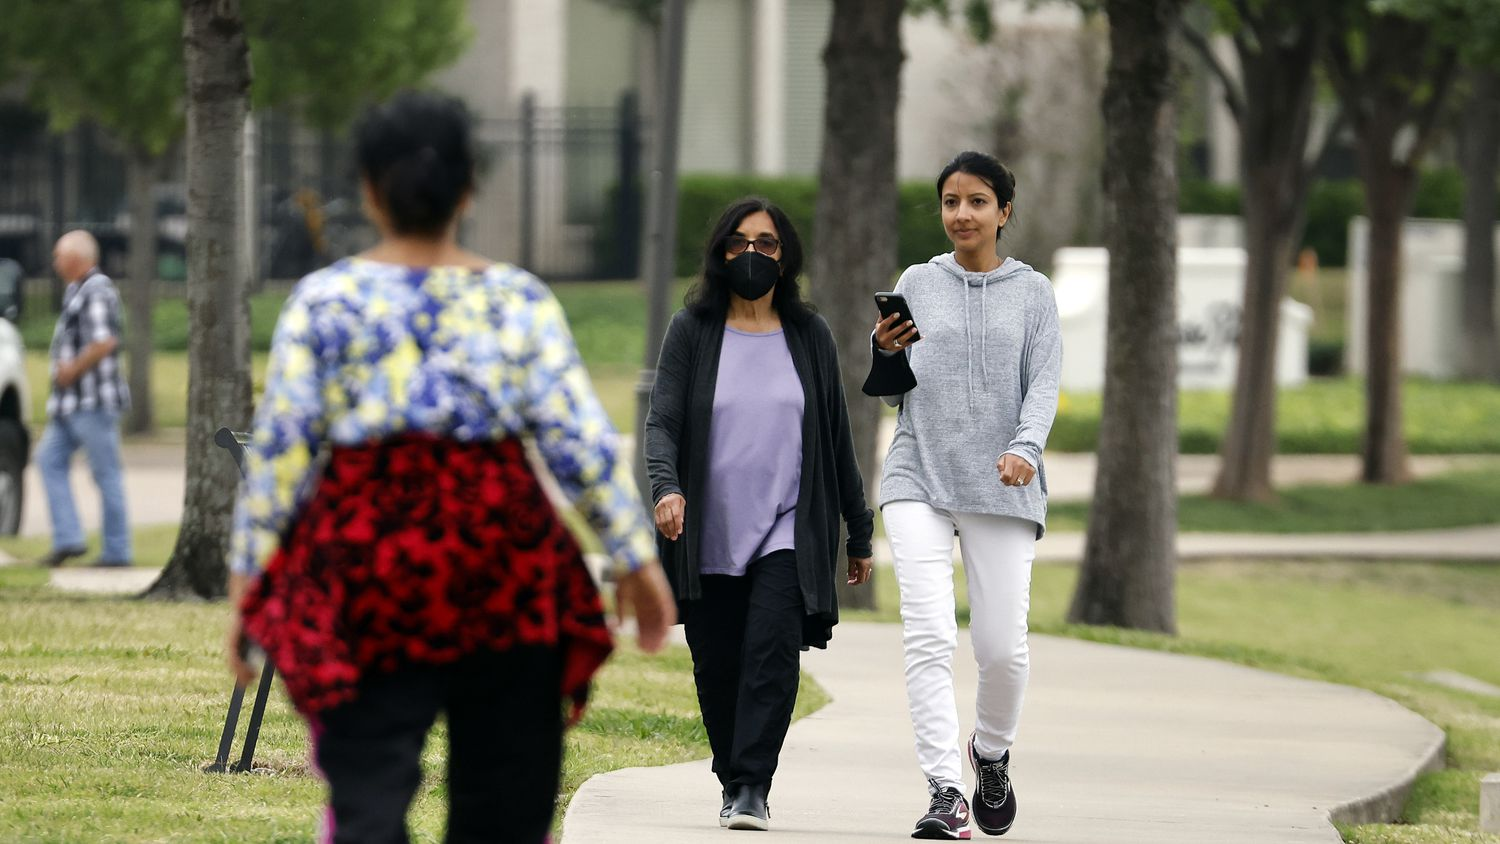 Neighbors living around Lago de Claire lake in the Las Colinas area of Irving, Texas, stroll along a lake path with and without masks, Tuesday, April 27, 2021.